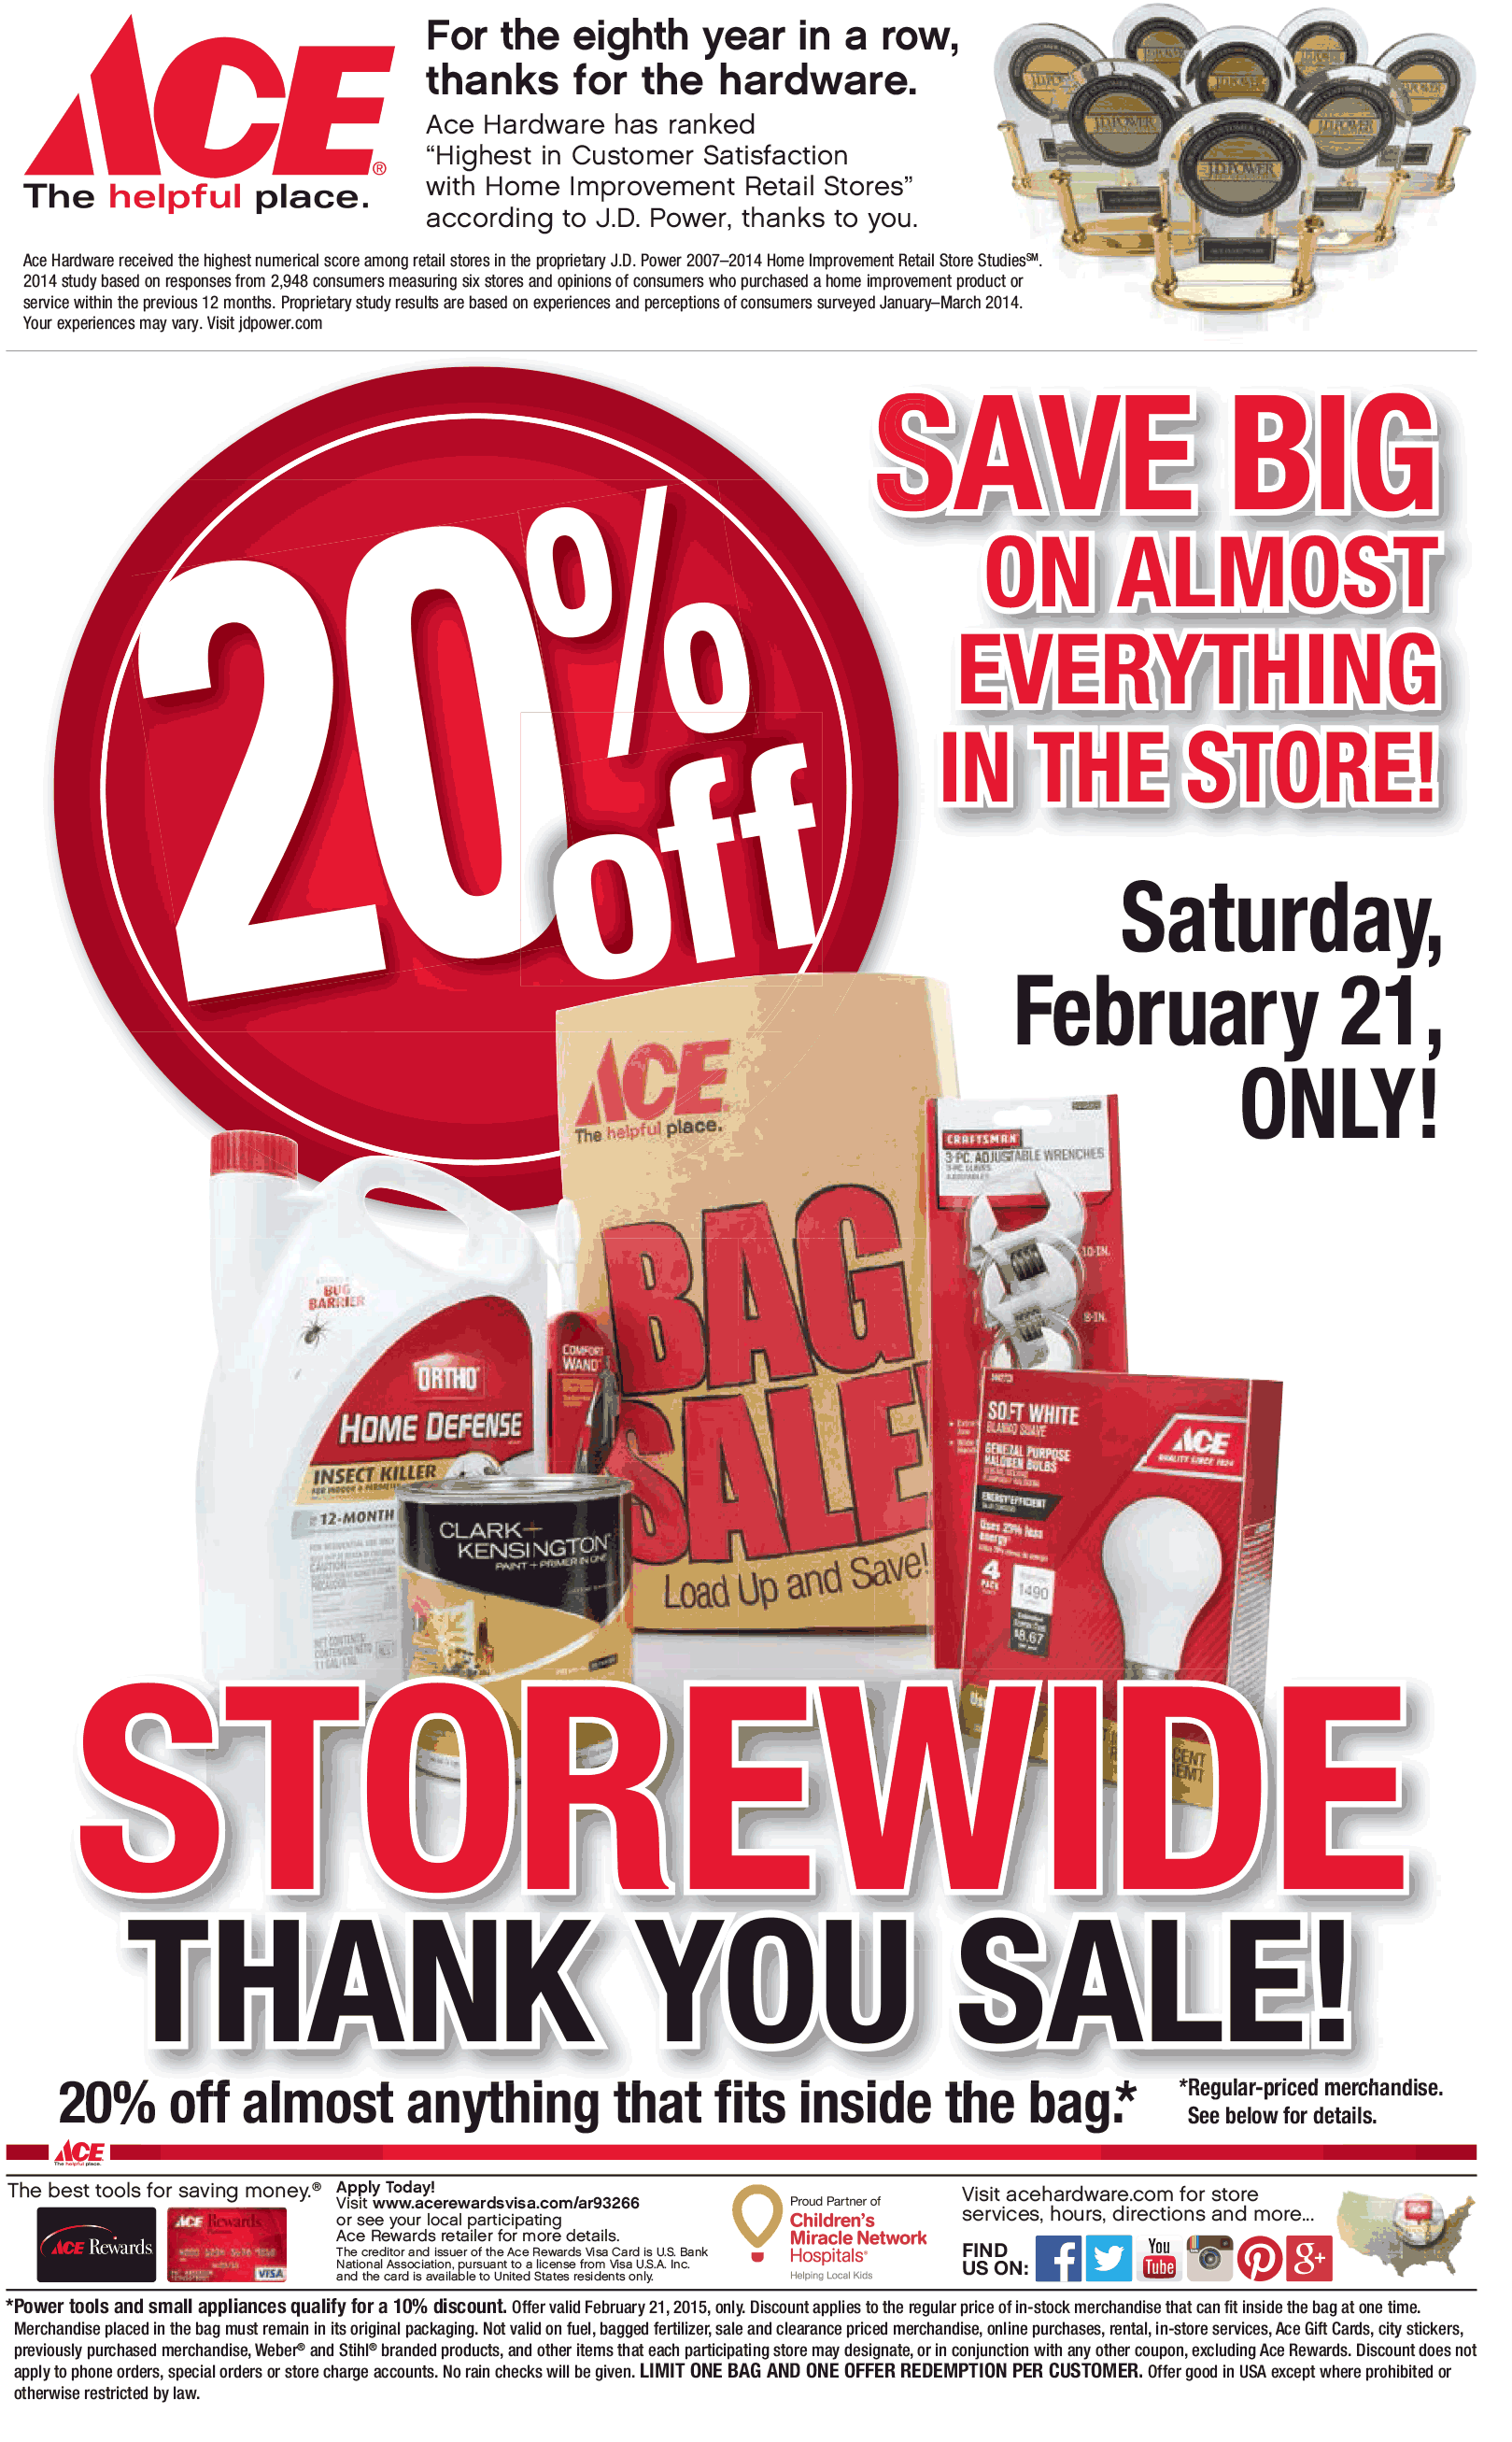 Ace Hardware Coupon January 2018 20% off whatever fits in the bag Saturday at Ace Hardware